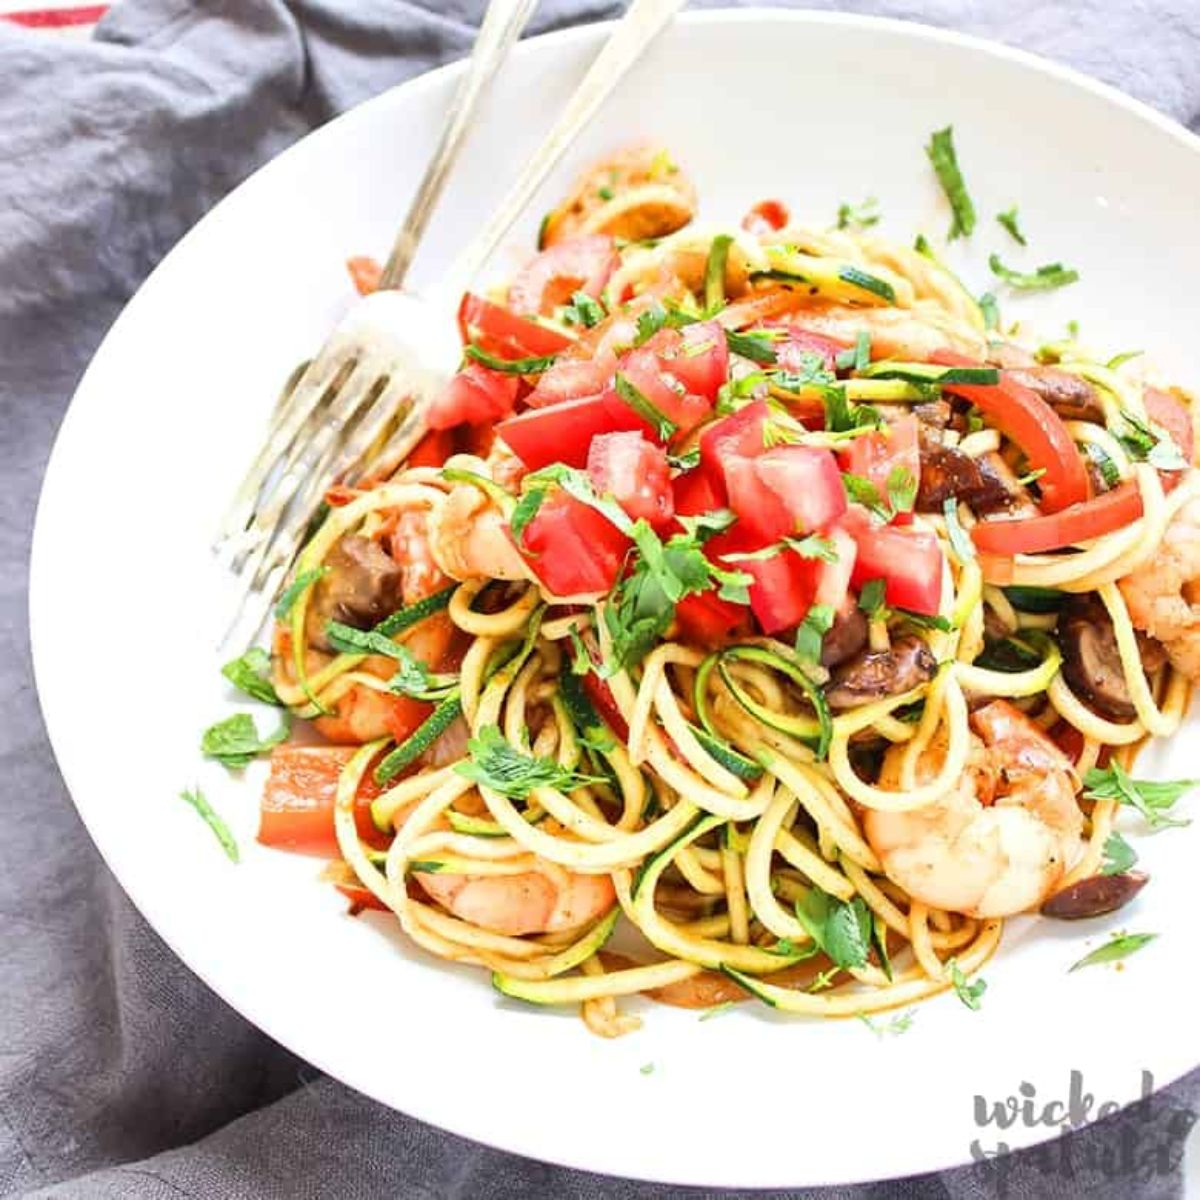 on a rumpled gray cloth is a white bowl filled with courgetti, mixed with proawns, chopped tomatoes and basil